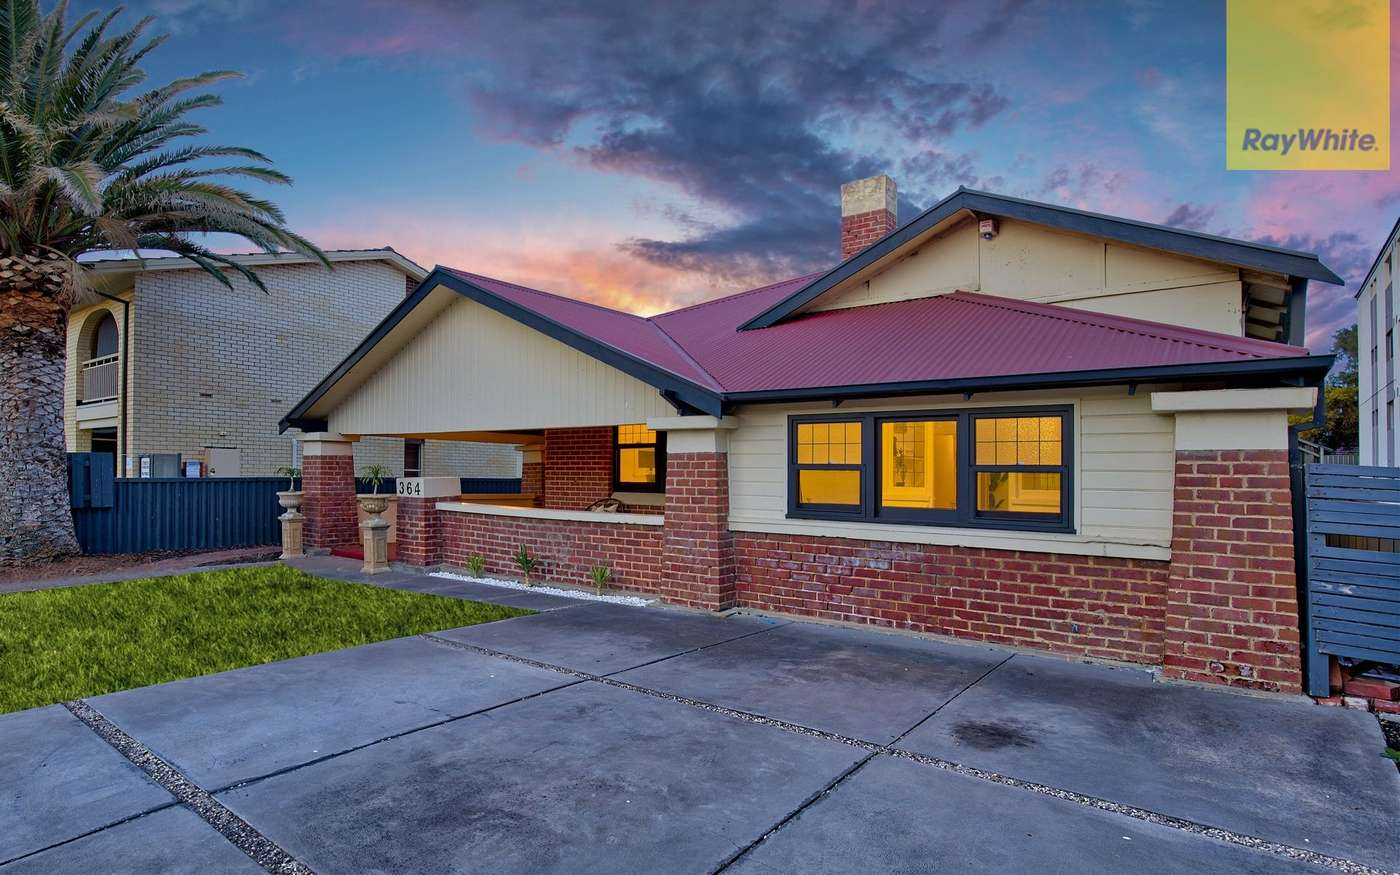 Main view of Homely house listing, 364 Seaview Road, Henley Beach, SA 5022